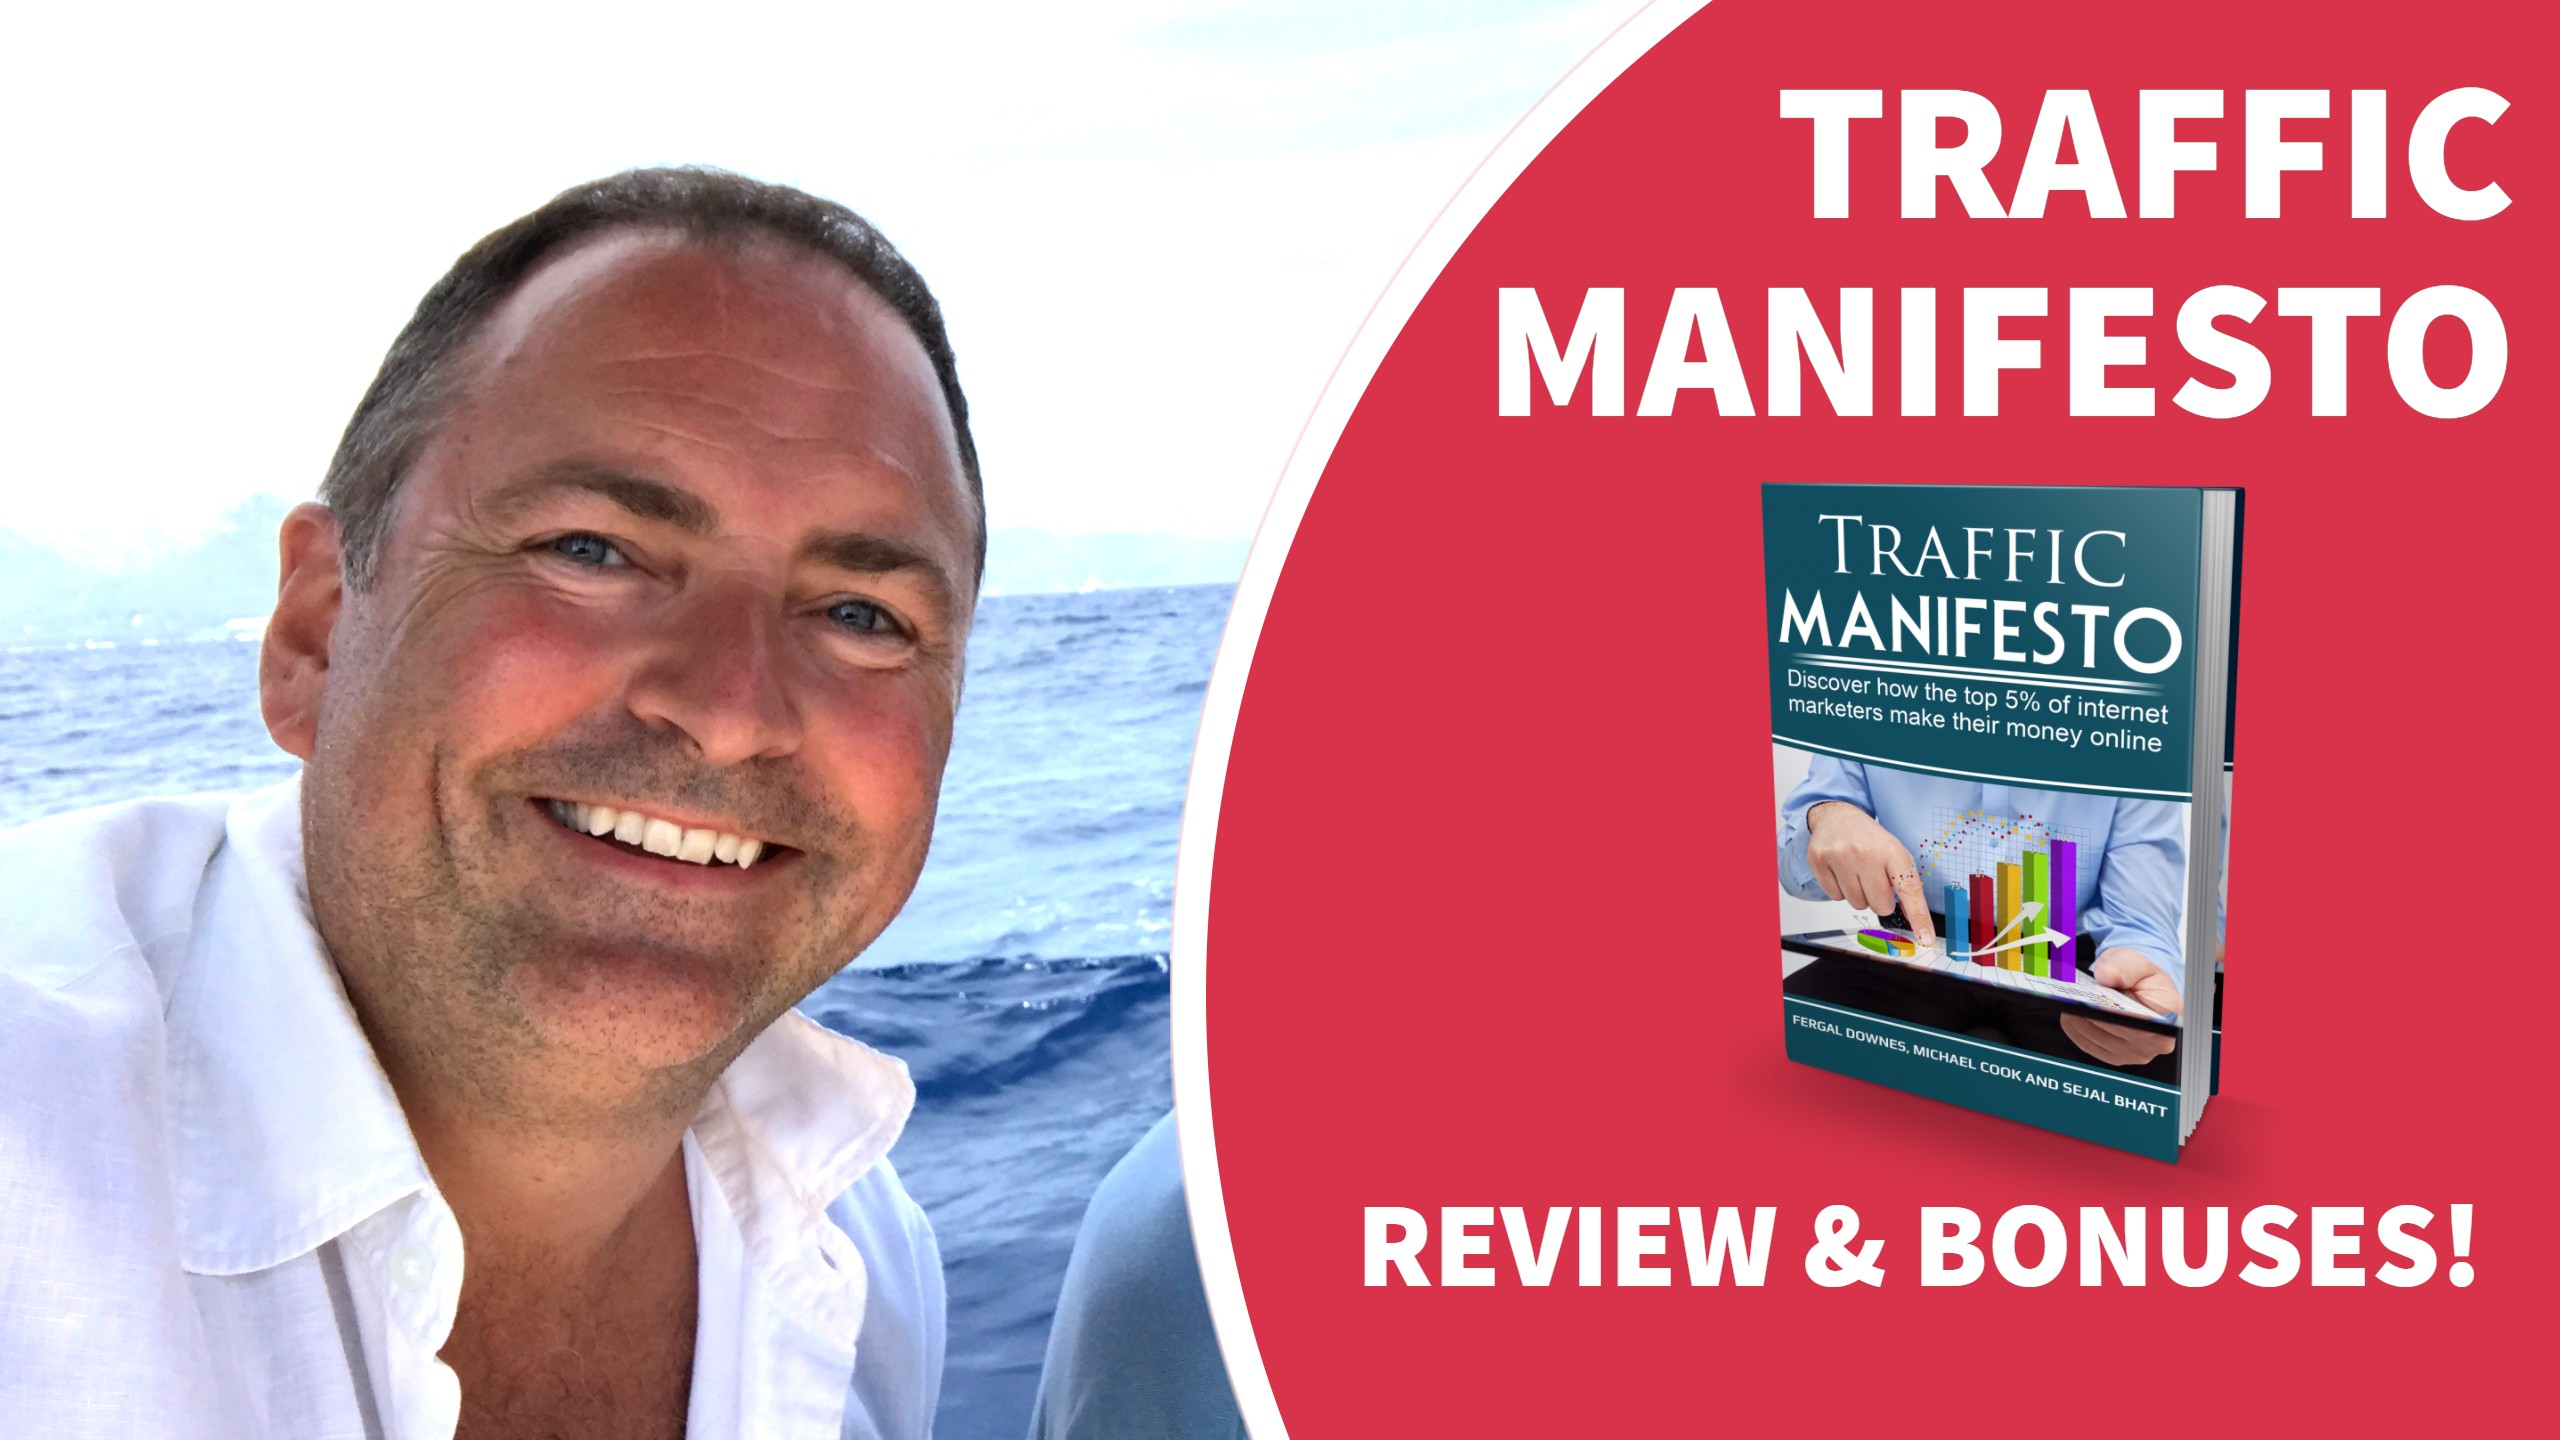 Traffic Manifesto Review & Bonuses